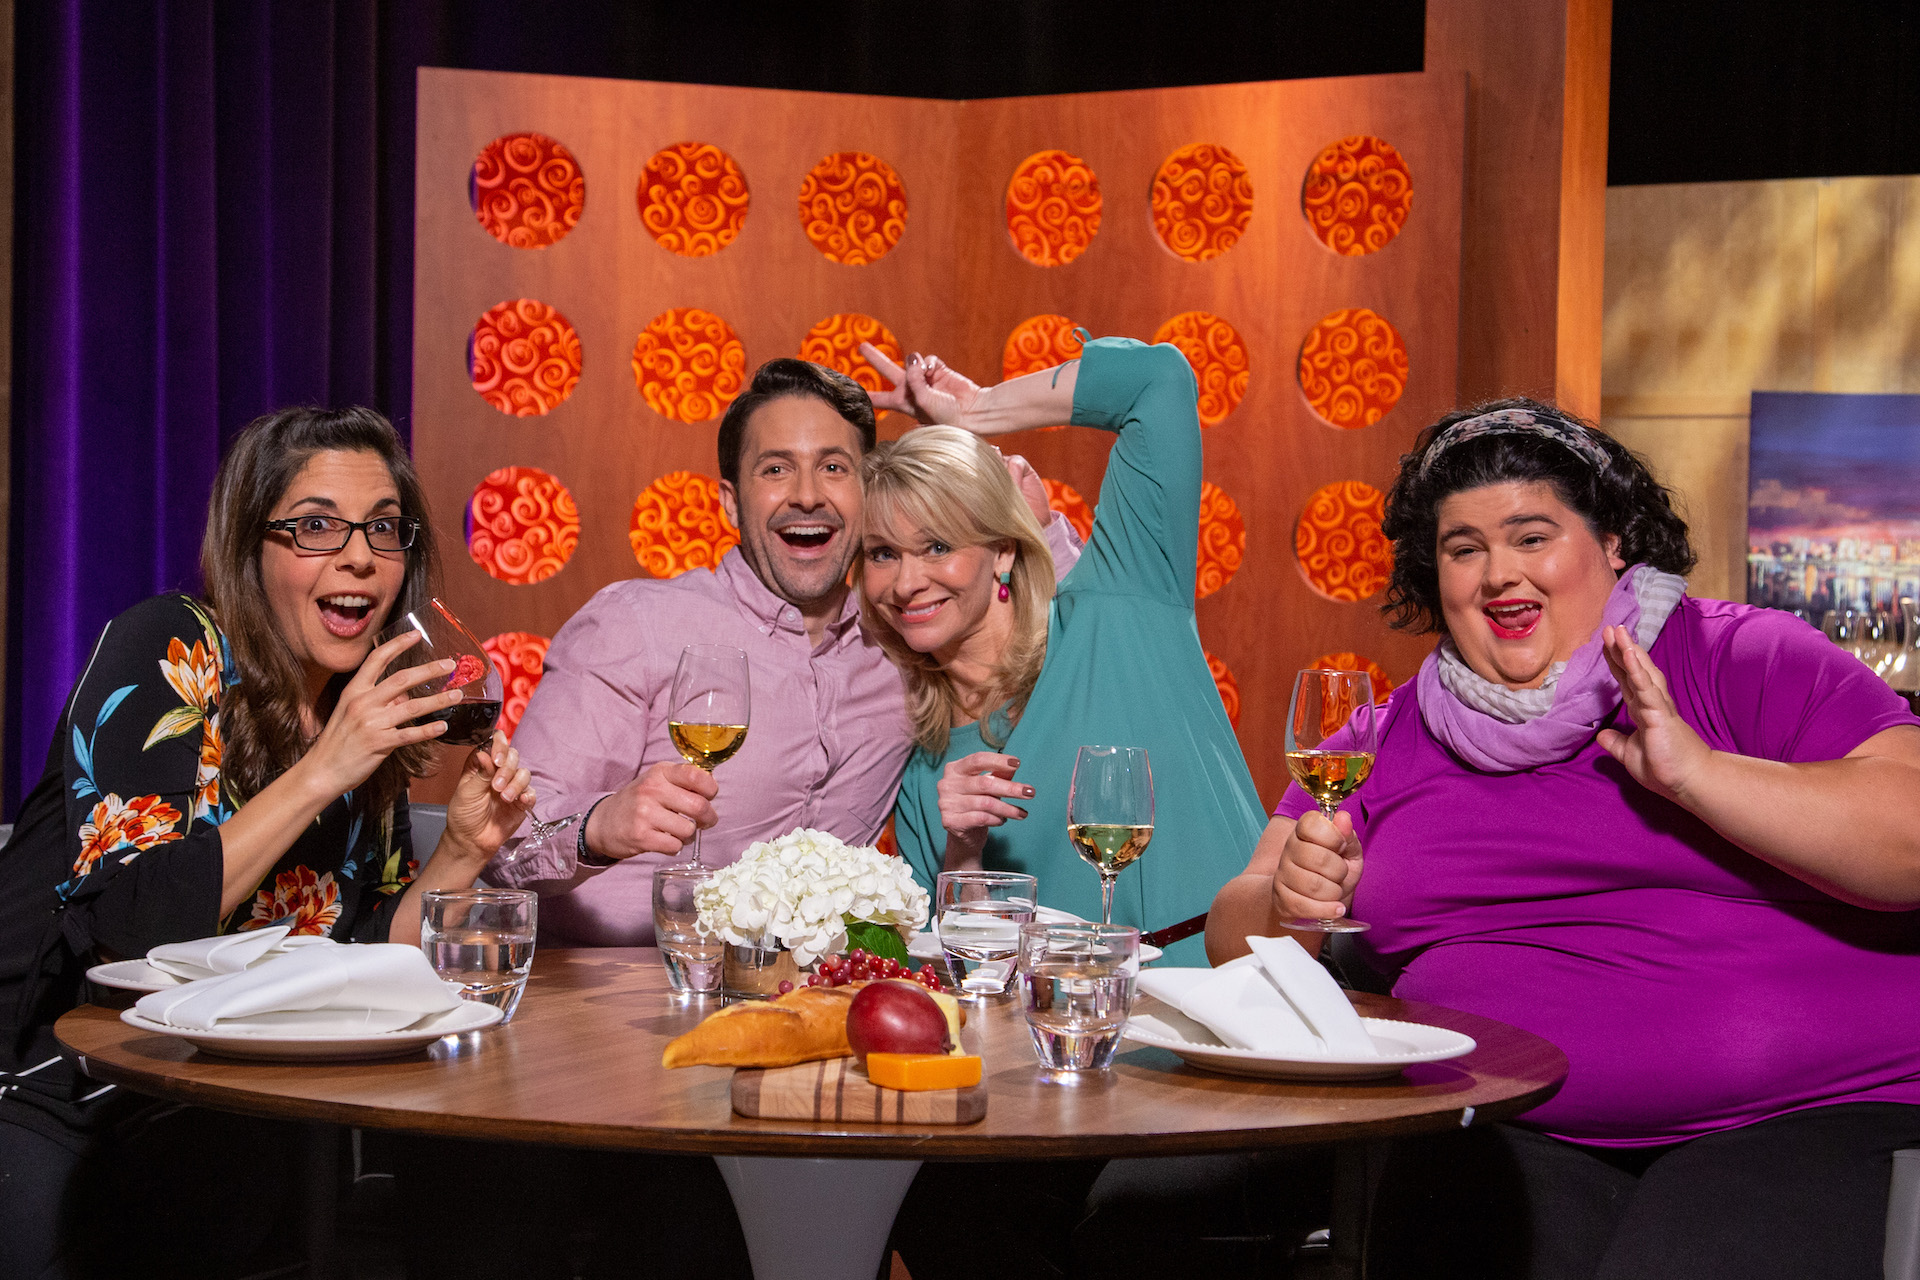 Host Leslie Sbrocco and guests on the set of season 14 episode 11.